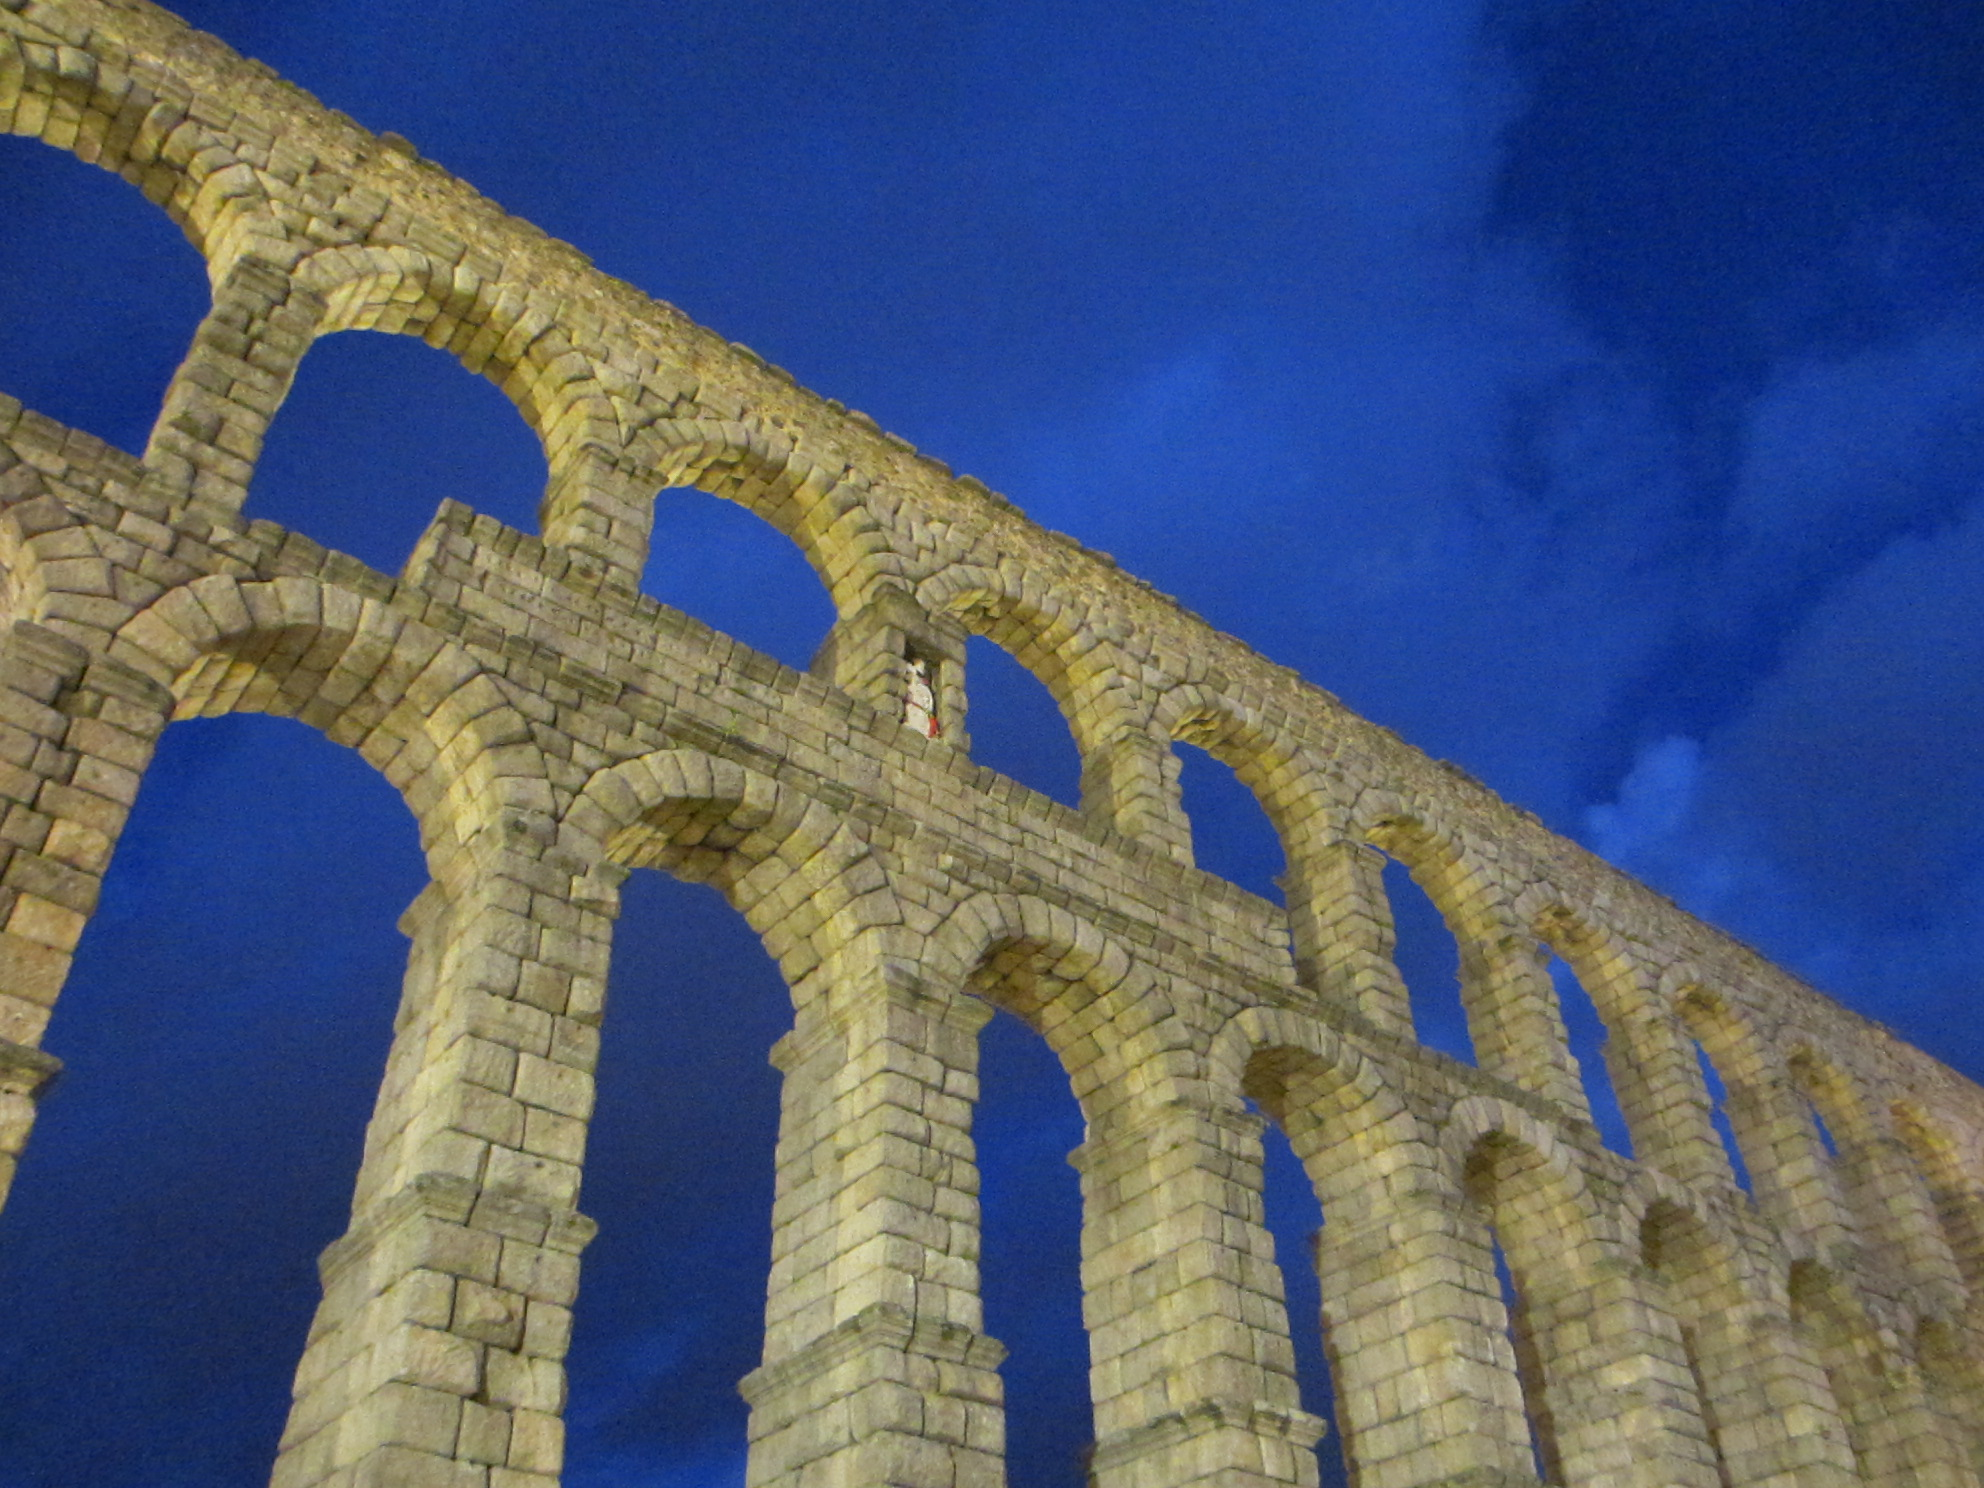 Like this UNESCO World Heritage aqueduct!